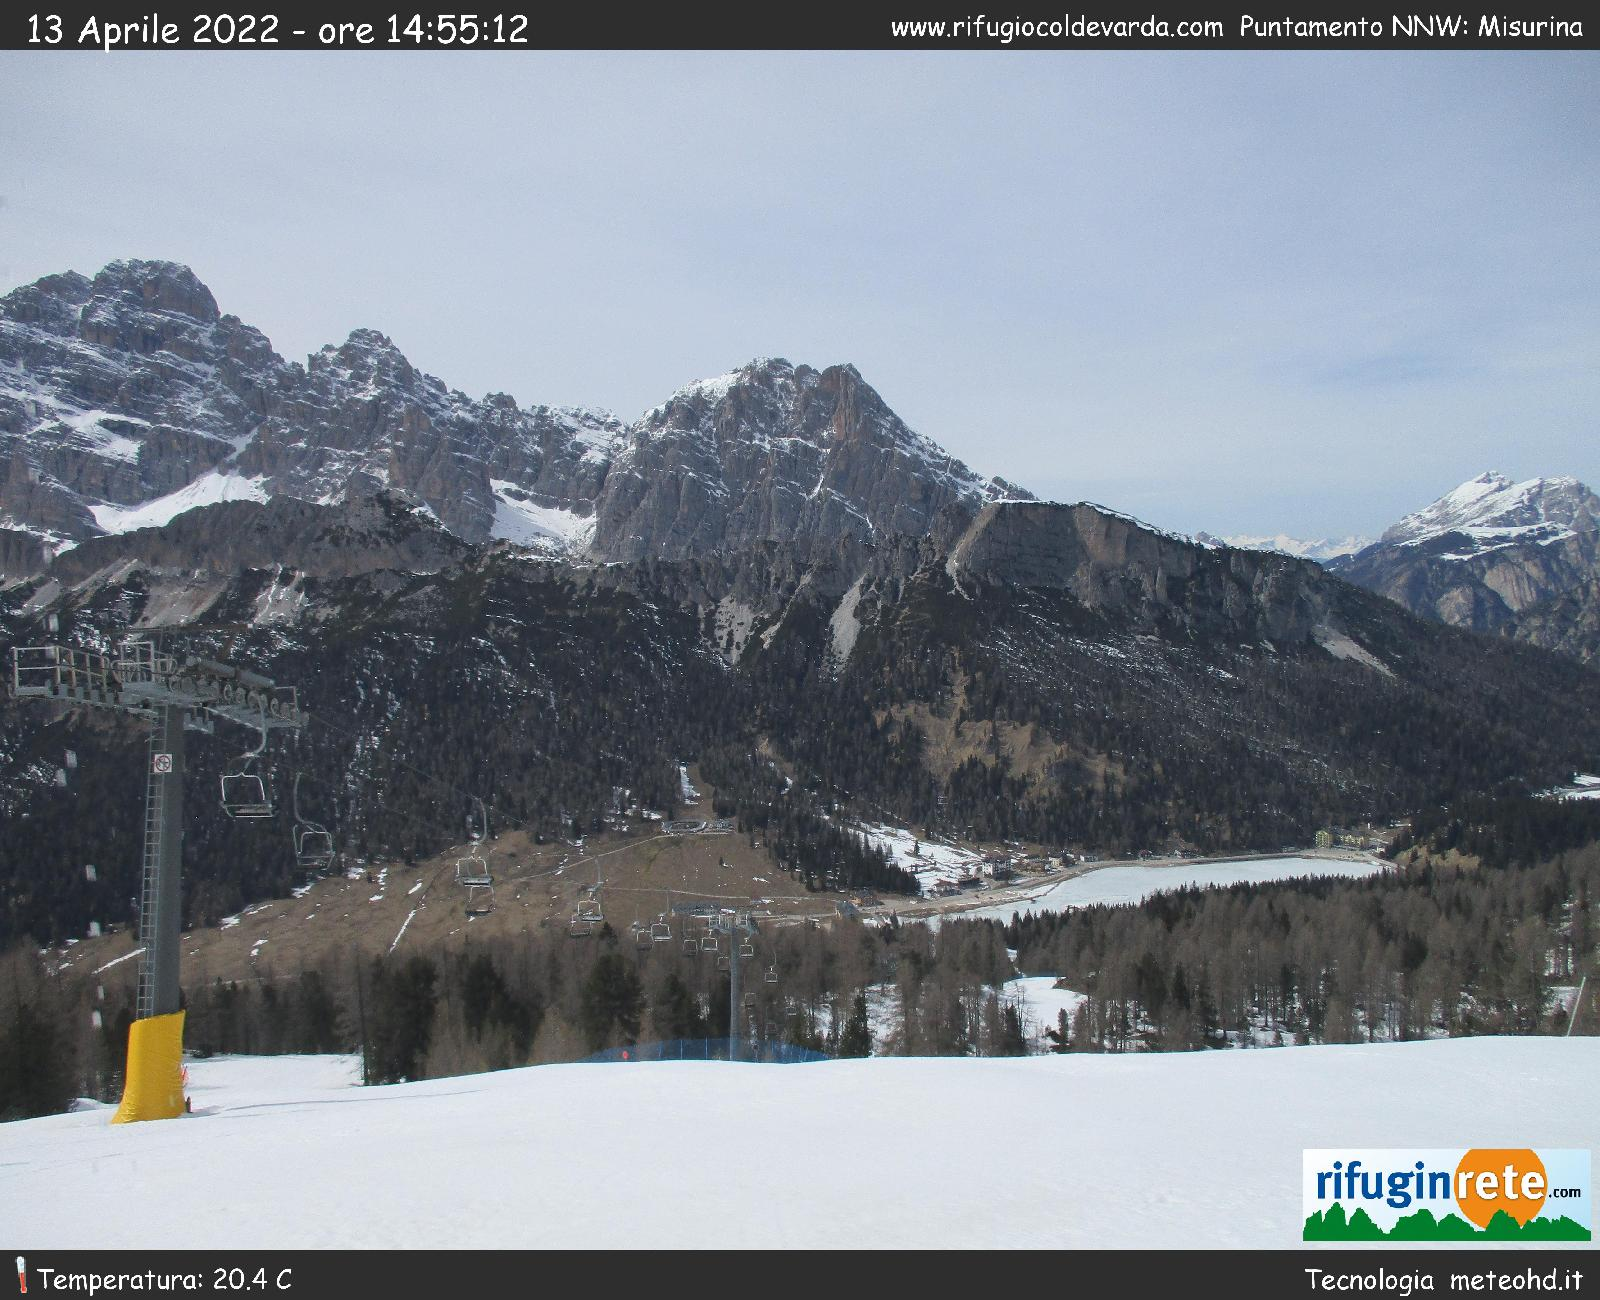 Rifugio Coldevarda puntamento Misurina webcam